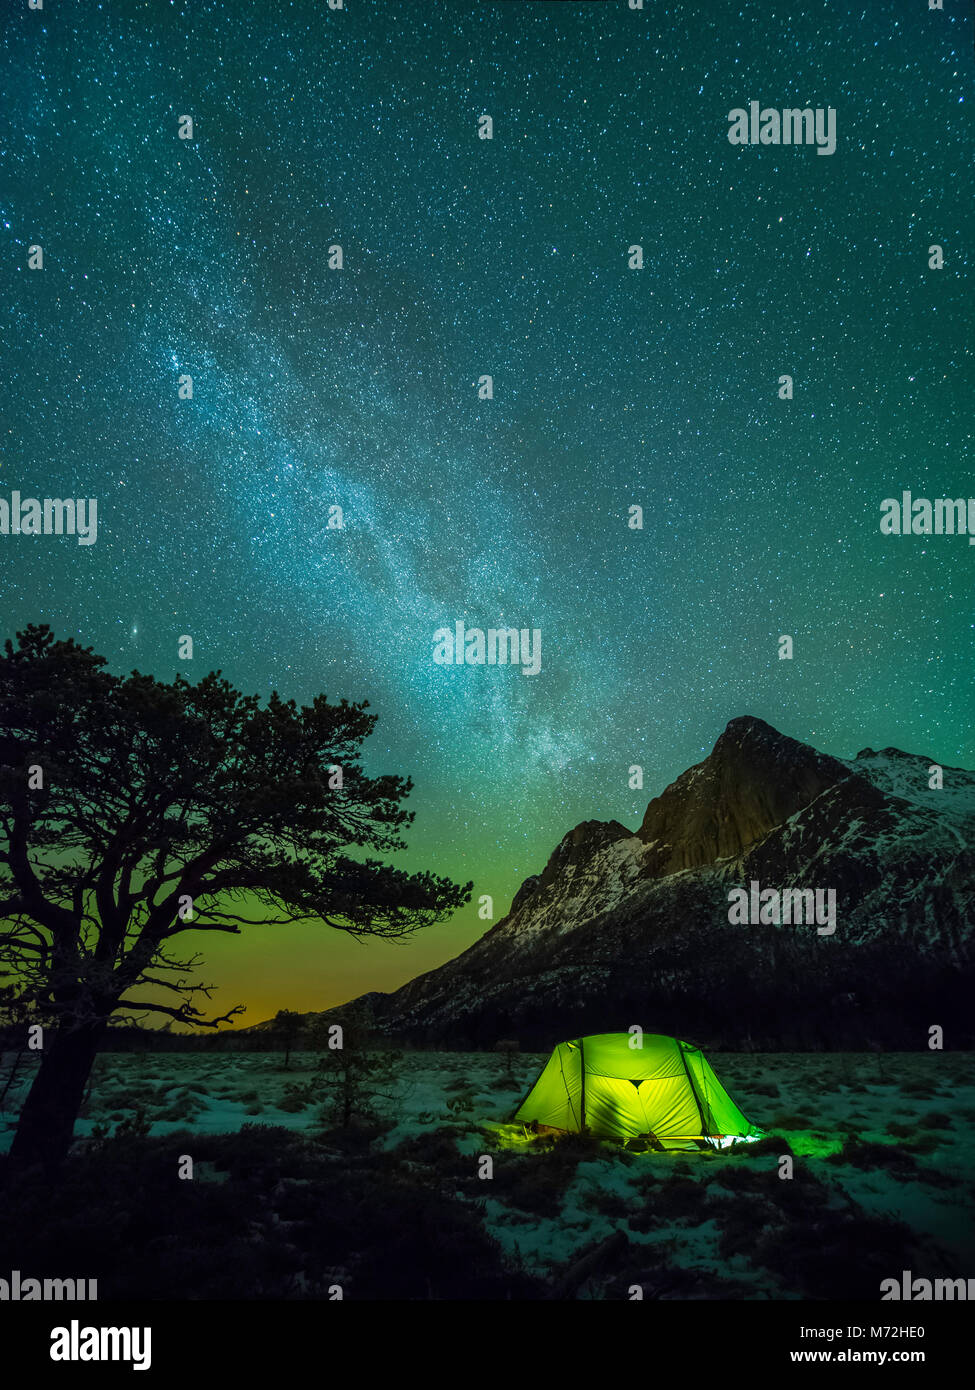 Camping under the Milky way. A pine tree, a tent and the mountain of 'Strandåtinden' during night time - Stock Image